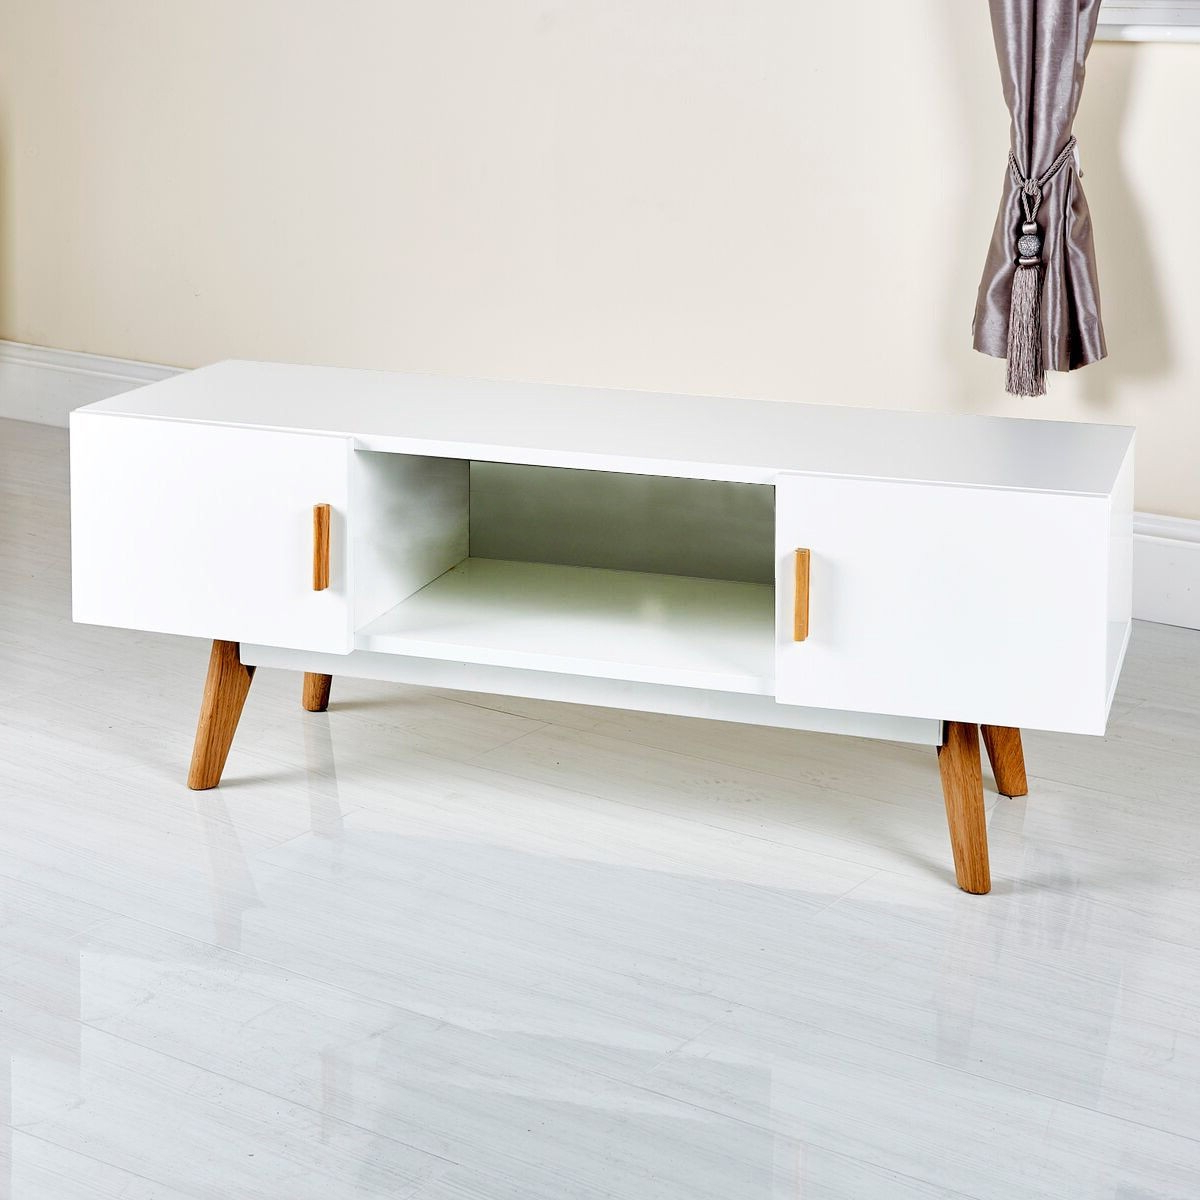 Trendy Stylish White Modern Tv Stand From Abreo Abreo Home Furniture With Regard To Scandinavian Design Tv Cabinets (View 19 of 20)